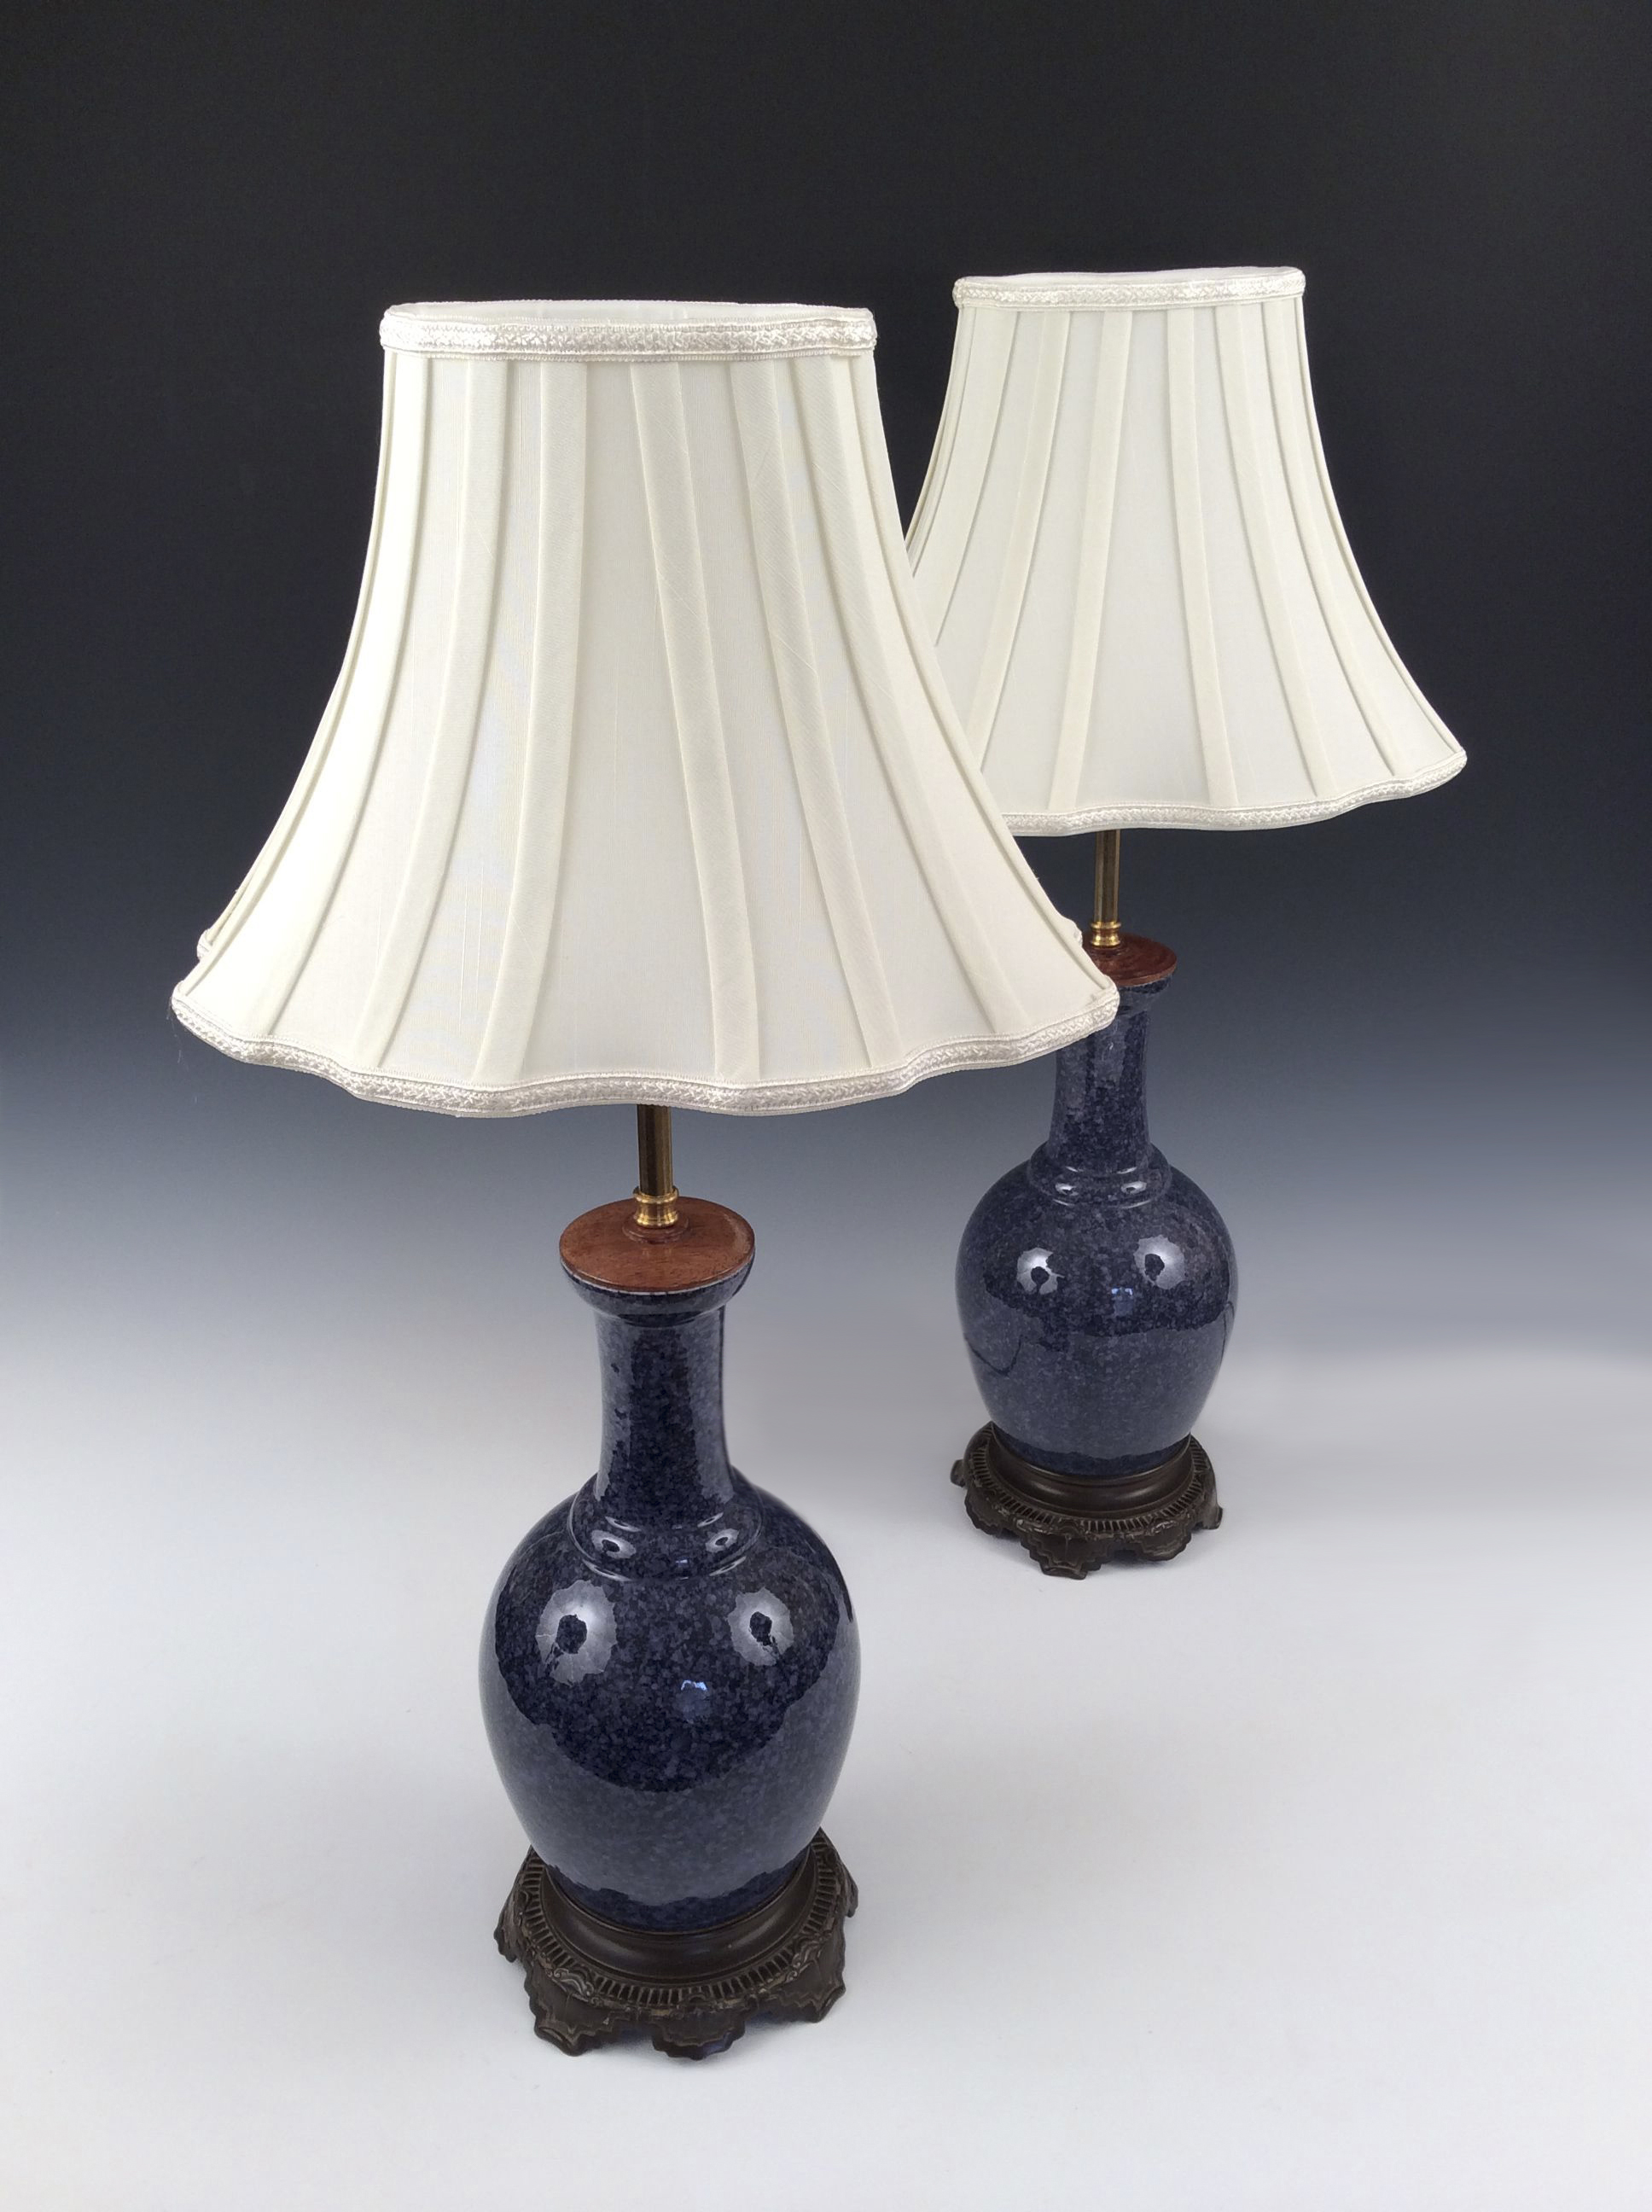 pair table lamps chinese blue vases antique 5738 1 5738. Black Bedroom Furniture Sets. Home Design Ideas